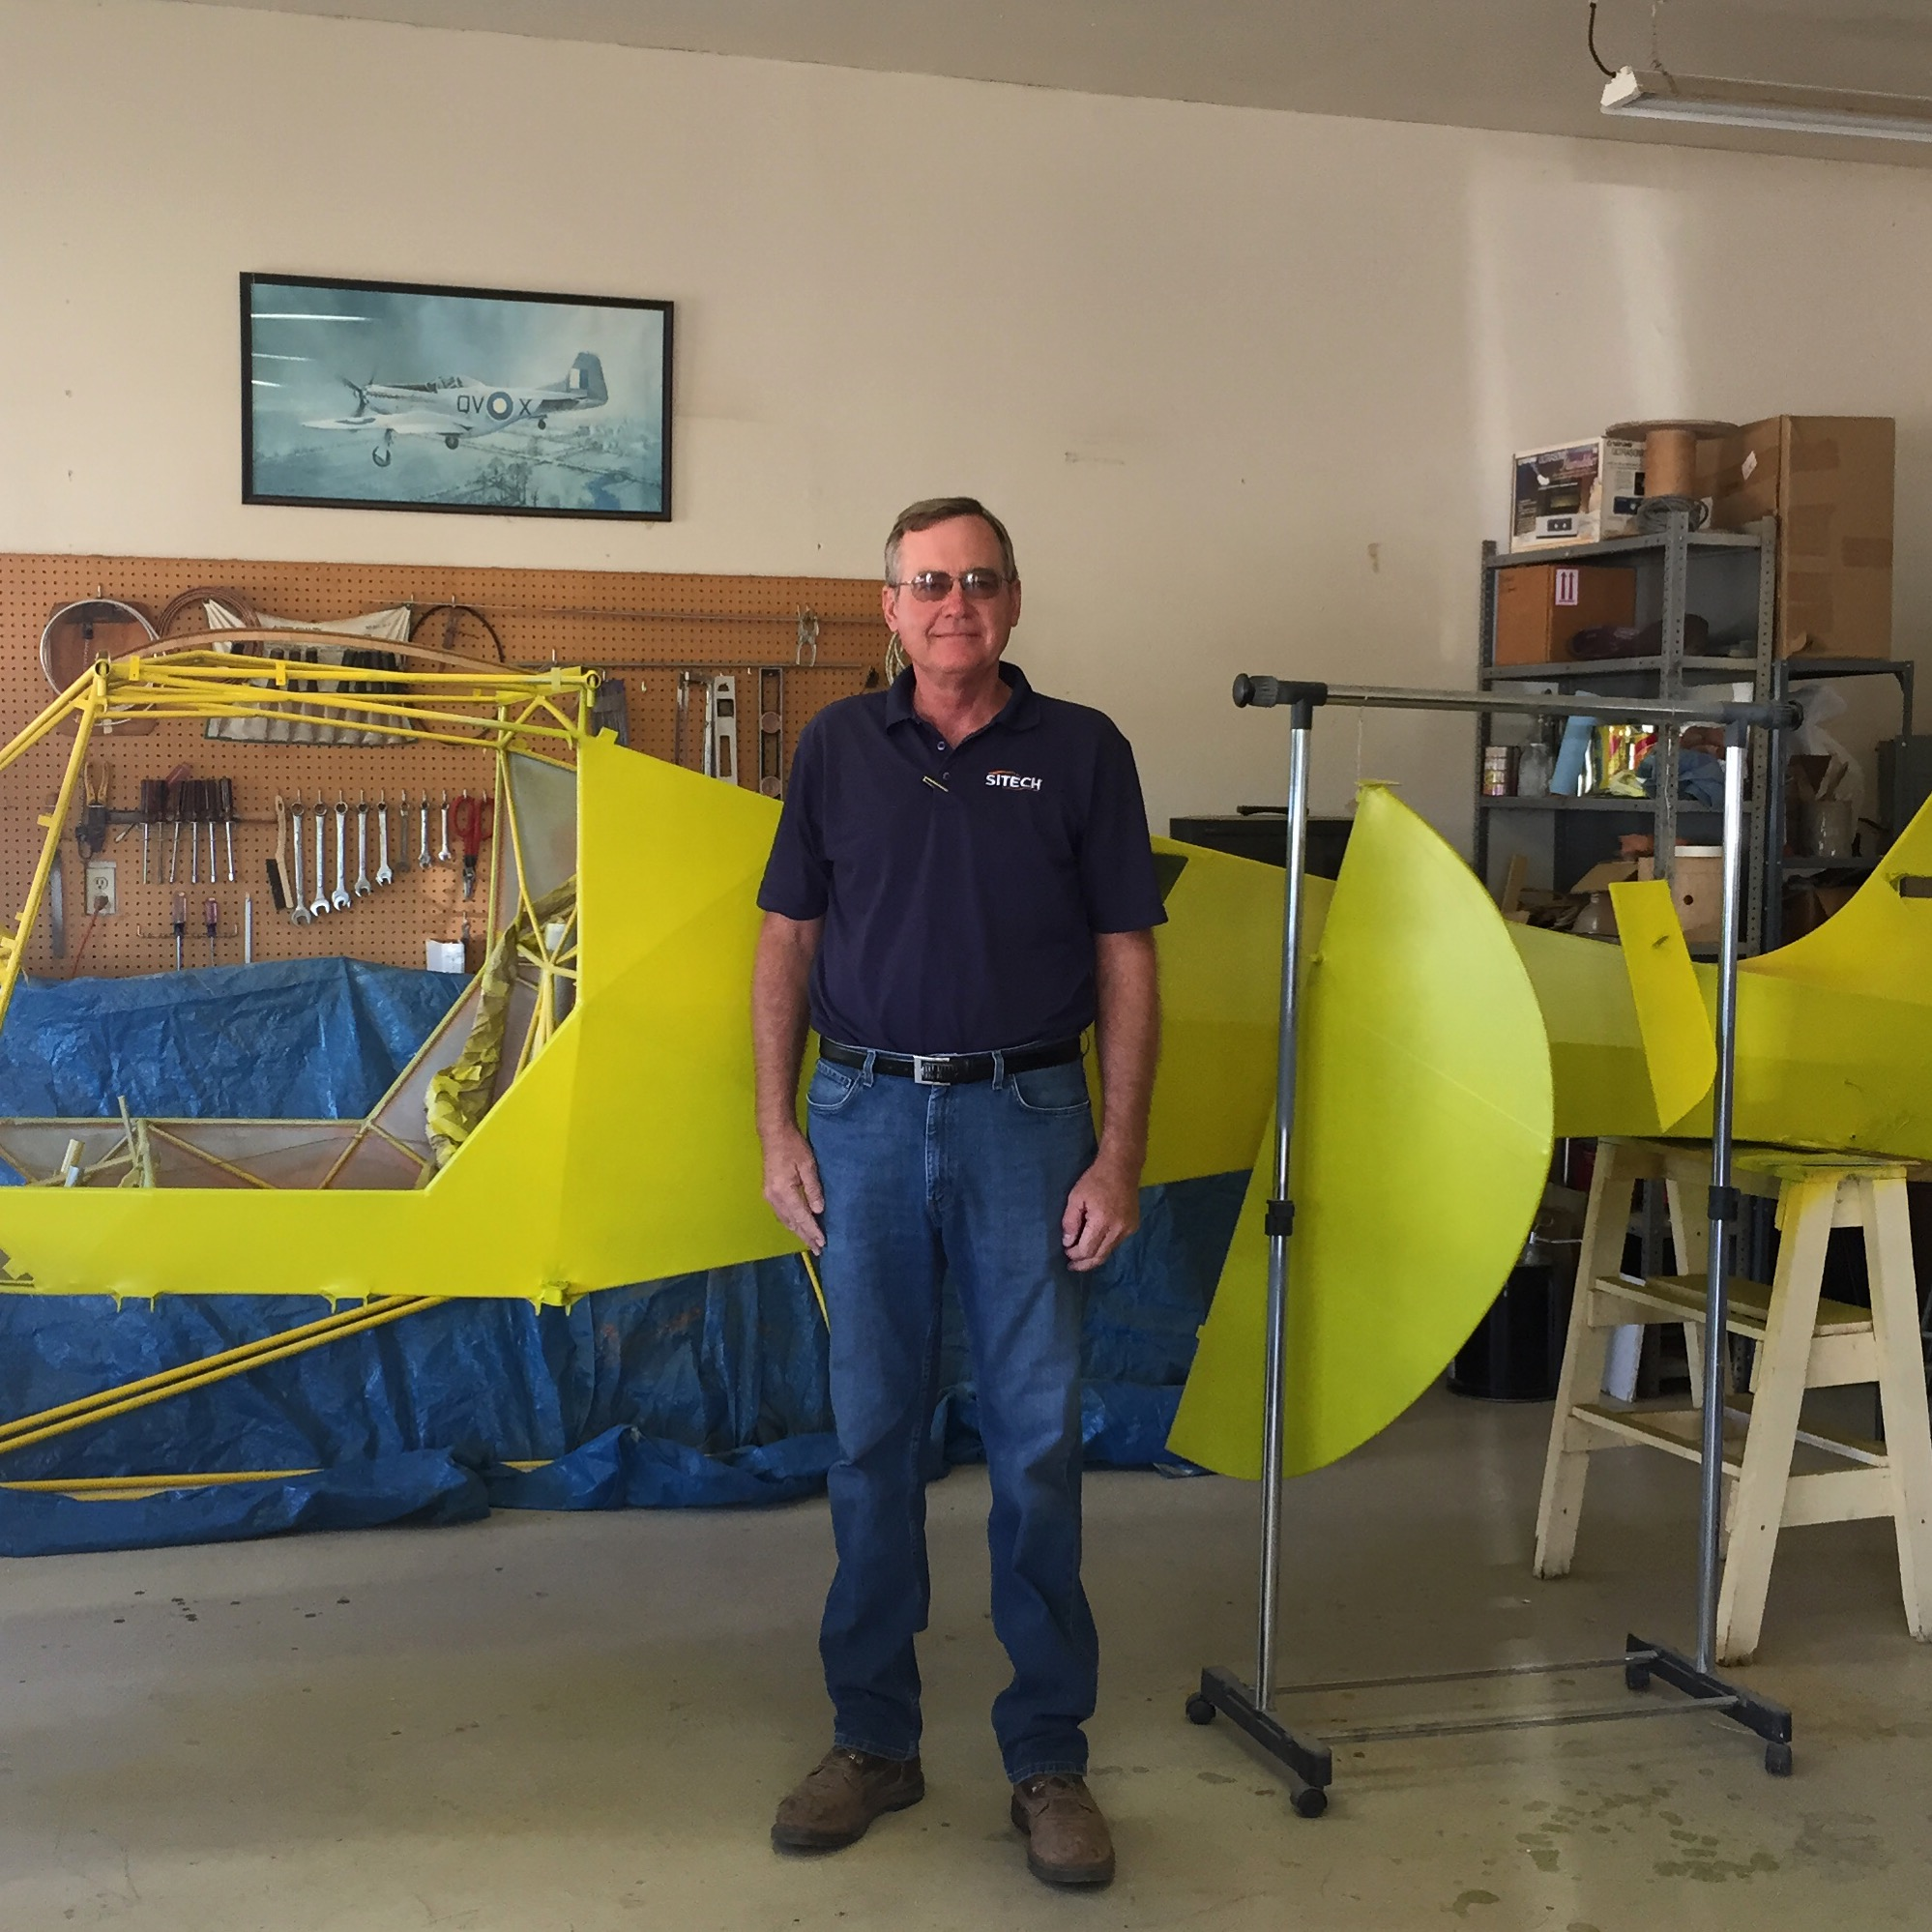 """Midland, TX. September, 2015.John Schoon of the local Experimental Aircraft Association (EAA) chapter in Midland stands in front of a plane the club is building. EAA was originally founded in 1953 by Paul H. Poberezny to bring aviation and the """"spirit of adventure"""" that comes with flying to the common man. """"There's nothing like the freedom of flight,"""" said Schoon. """"You can get from point A to point B however you wanna get there. It's just an awesome feeling,"""" he said, using the word in its true sense - inspiring awe, great admiration, and even fear. To experience true awesomeness is a humbling experience. """"To leave the ground instead of run around with all these cars crawling along. Just go above that. To see the clouds. To see a rain cloud dumping rain out and you're flying right beside it. Dip your wing in or fly over it. Fly around mountains, fly over Fort Davis. It's just a whole new freedom.""""  #Midland  #texas    #eaa    #aviation    #freedom  #SnapshotLives Link to article:  http://www.mrt.com/news/top_stories/article_43601078-6636-11e5-9365-238c278e6b24.html"""